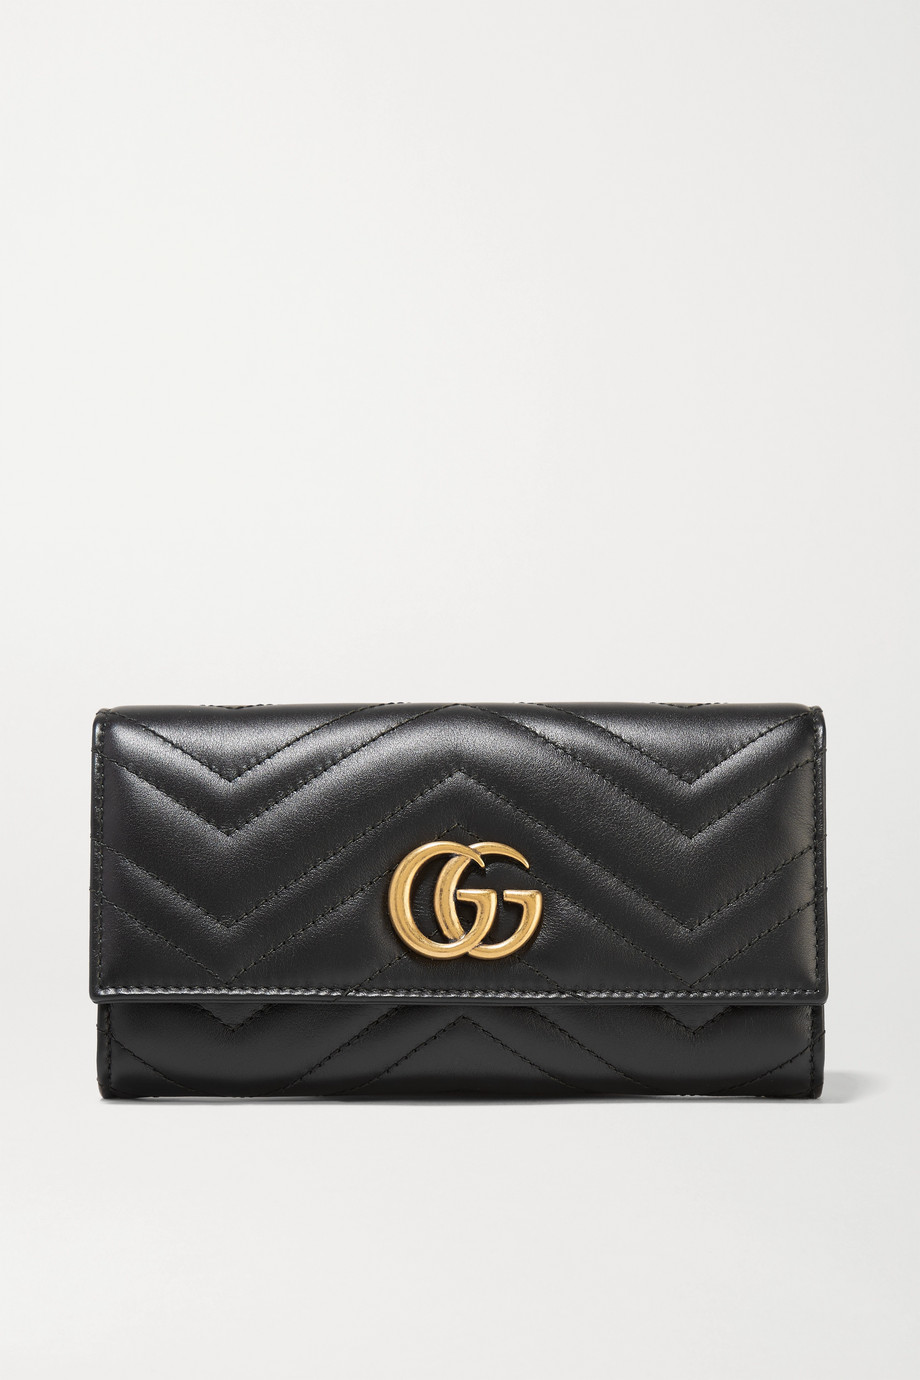 GUCCI GG Marmont quilted leather wallet